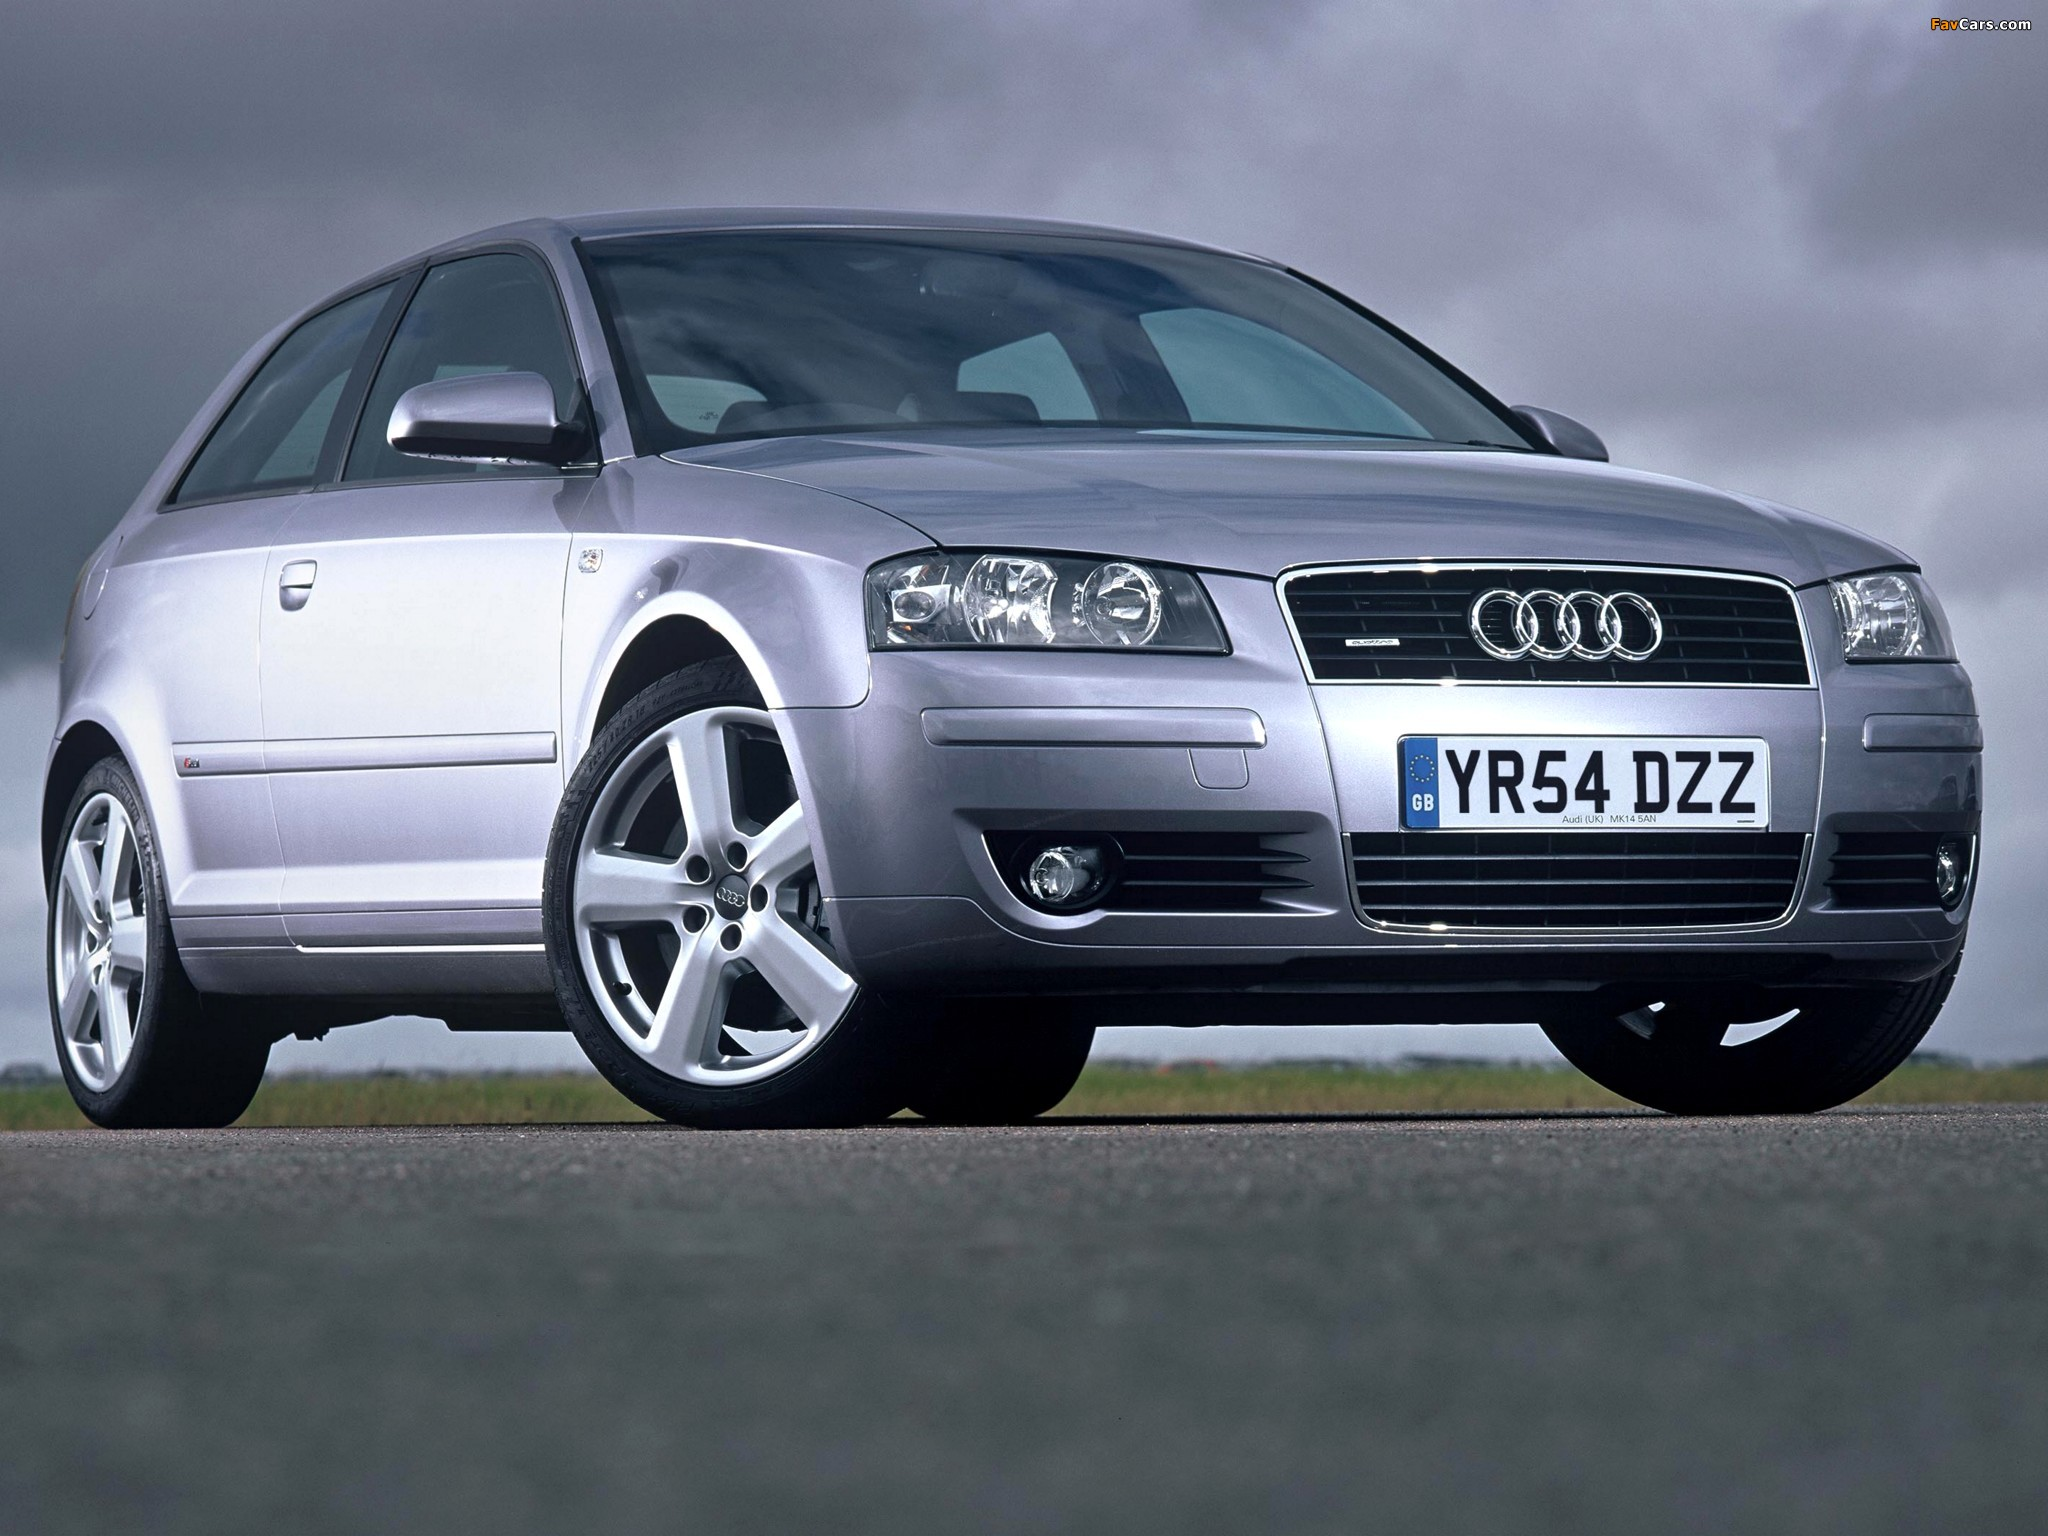 audi a3 3 2 quattro s line uk spec 8p 2003 2005 pictures. Black Bedroom Furniture Sets. Home Design Ideas